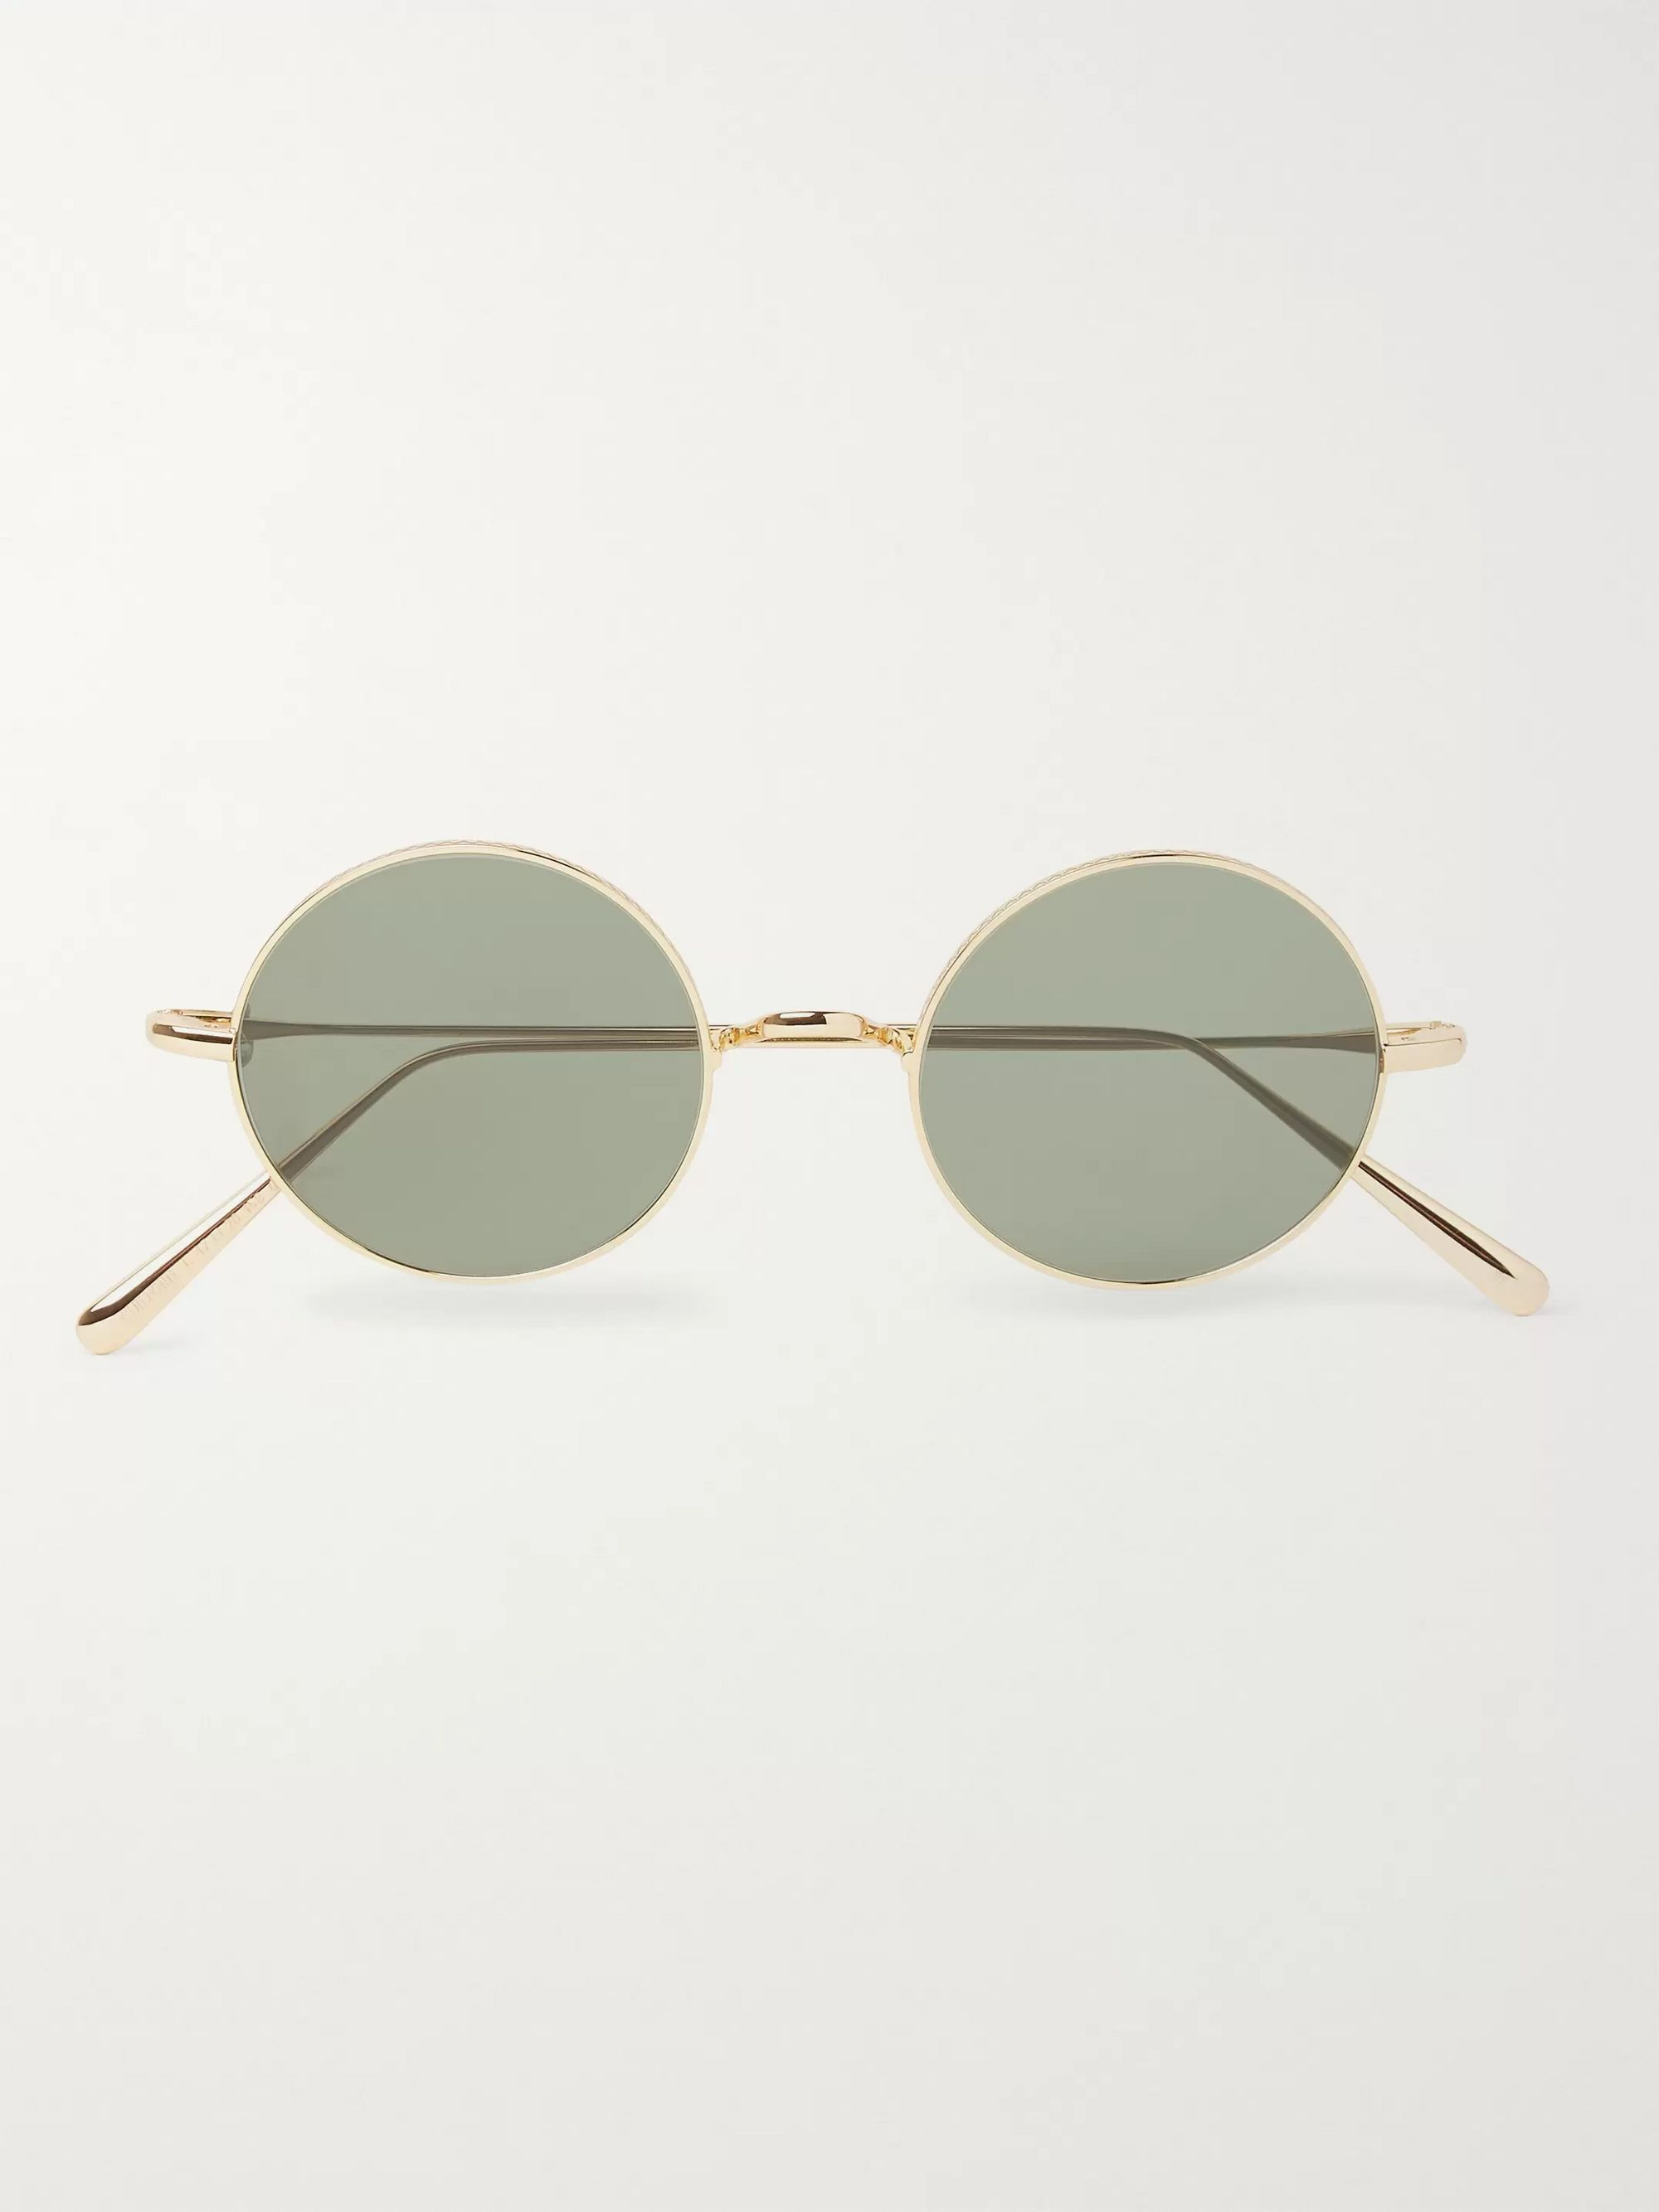 Cubitts Guilford Round-Frame Gold-Tone Metal Sunglasses